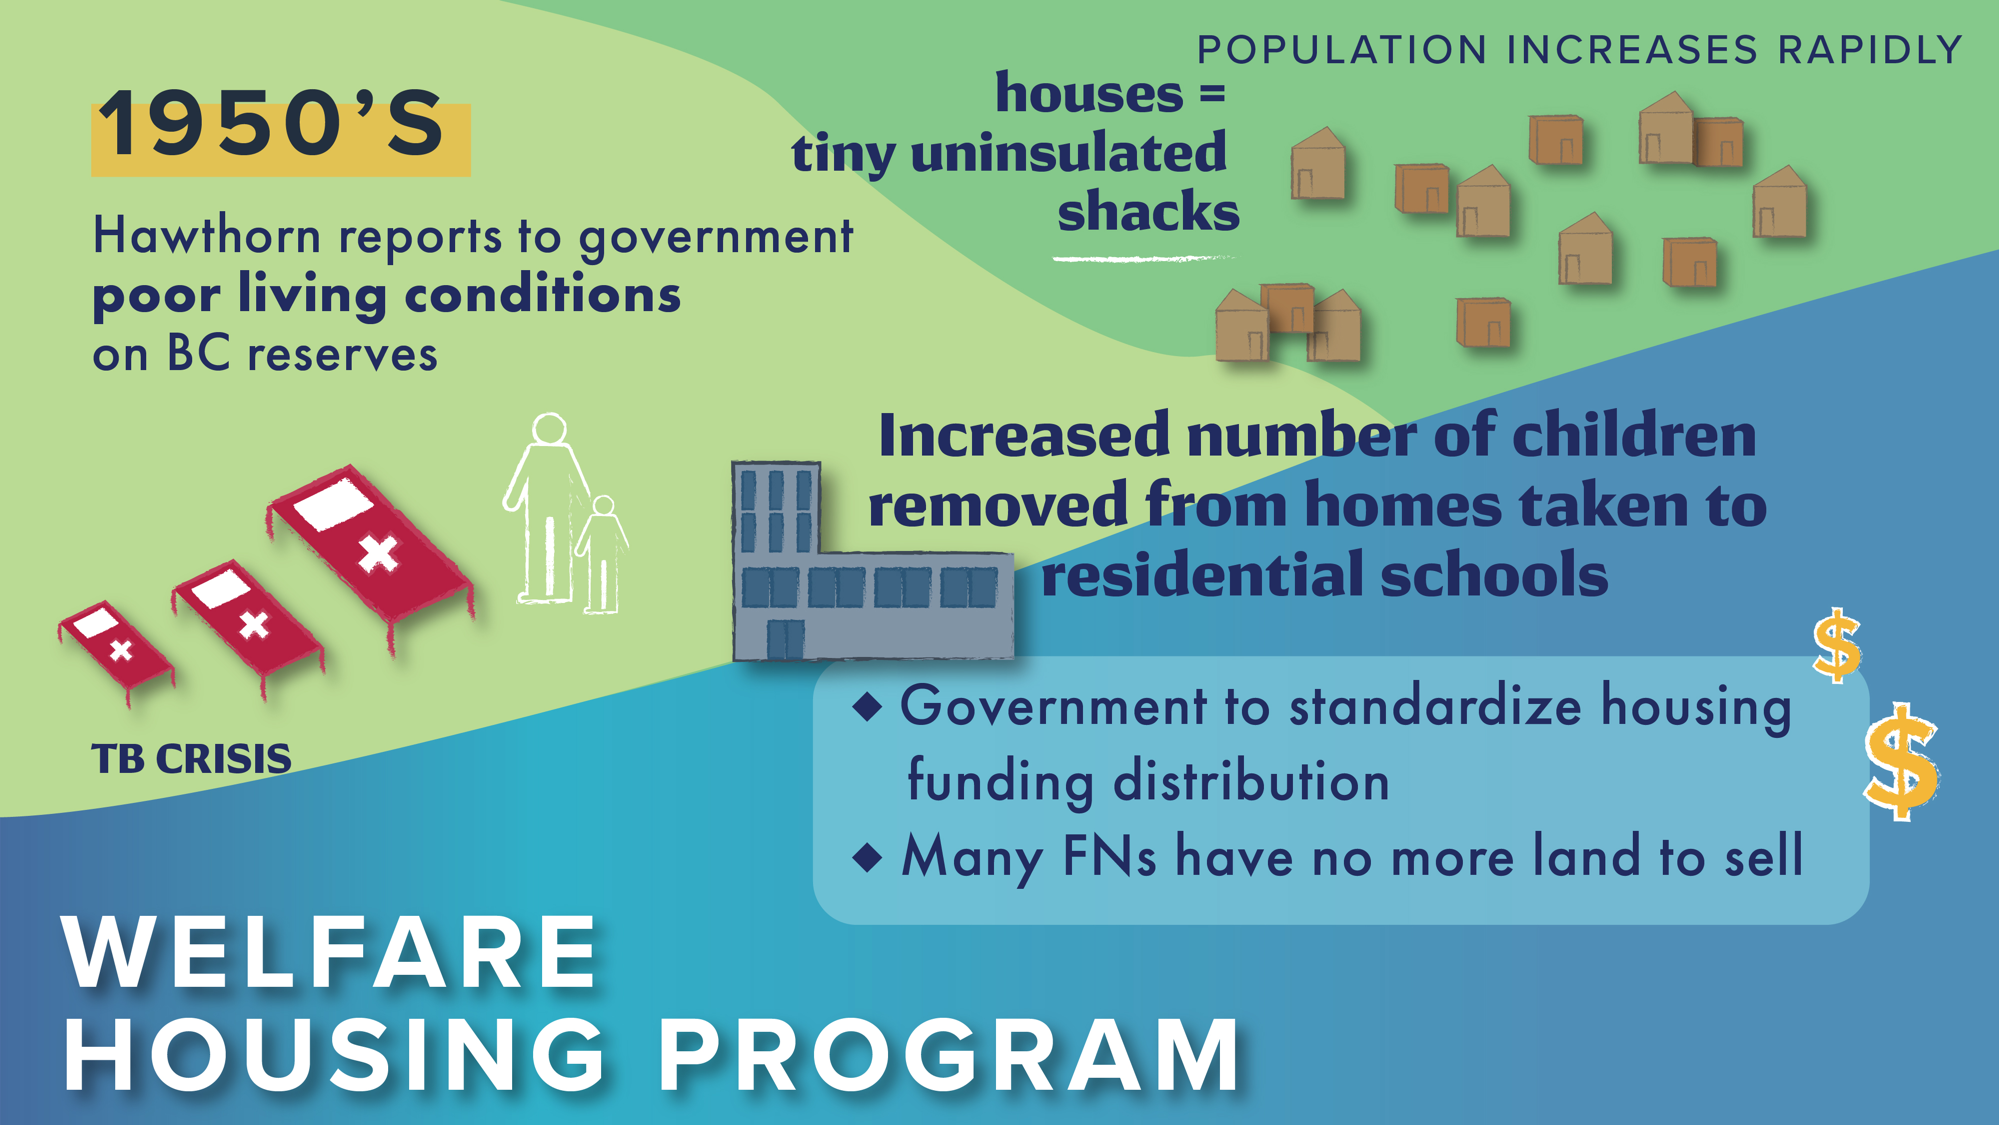 Welfare Housing Program